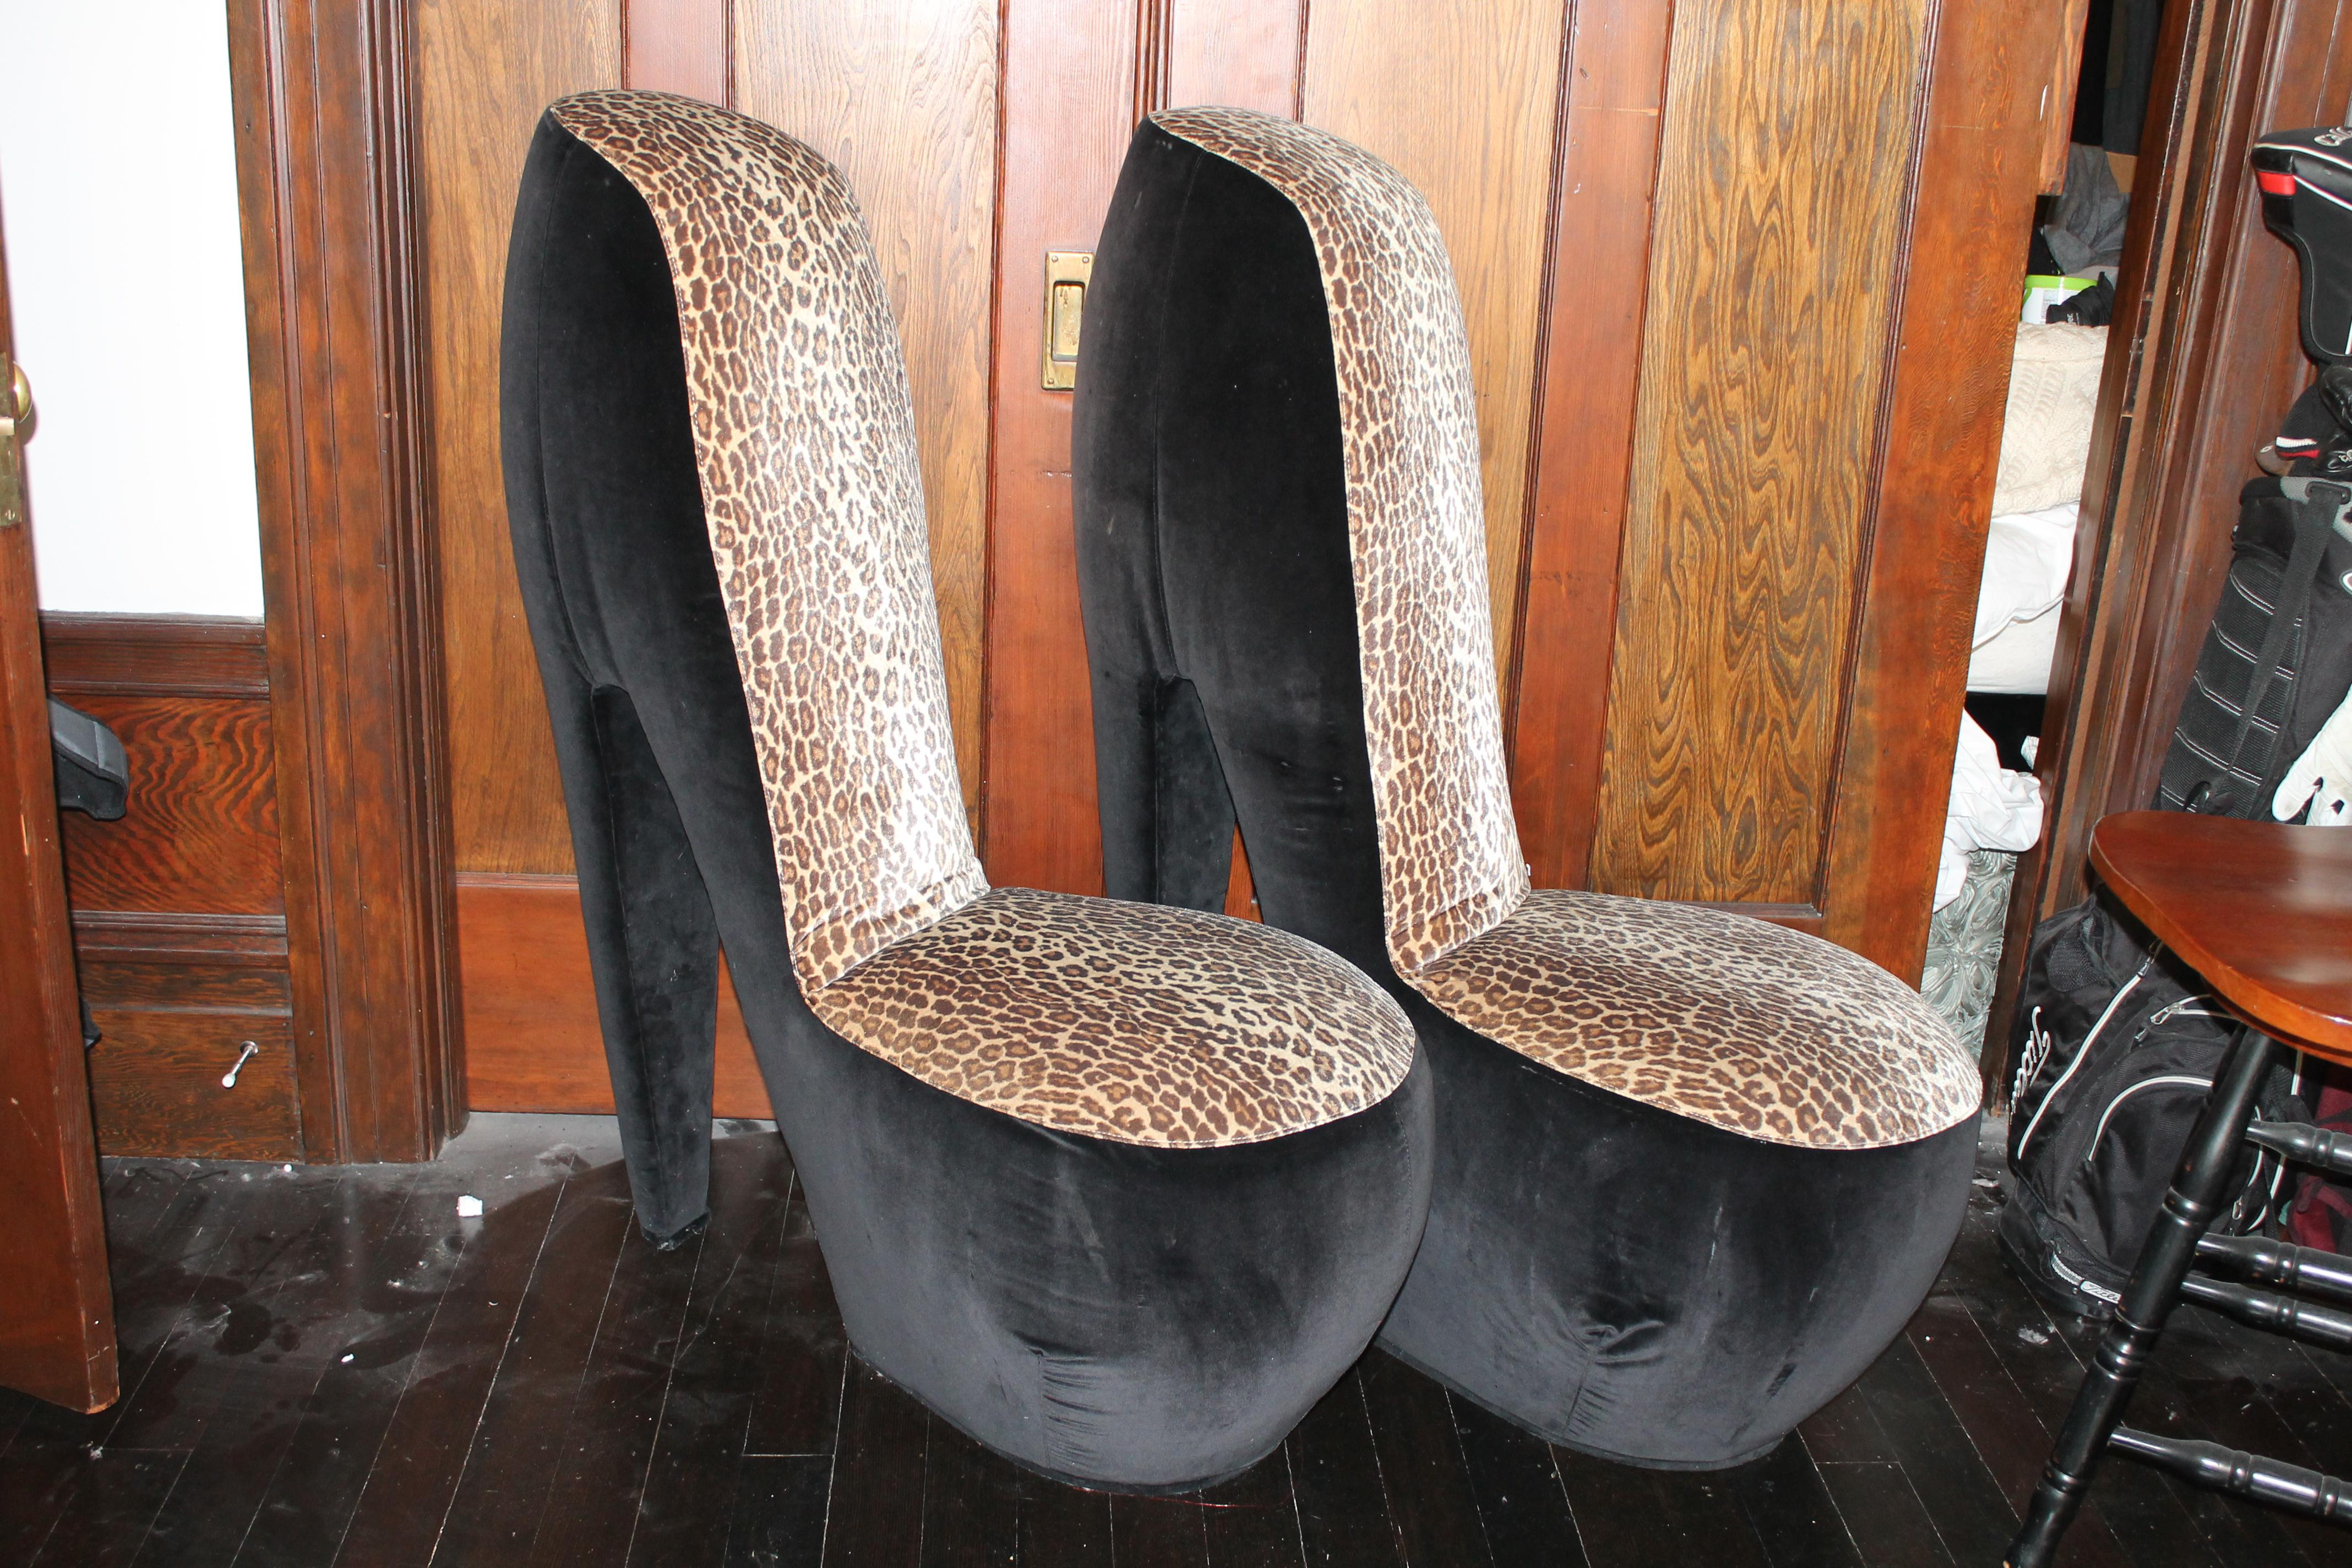 Charmant These Two Side High Heel Chairs Have Been In My Family For Over 20 Years! Leopard  Print ...